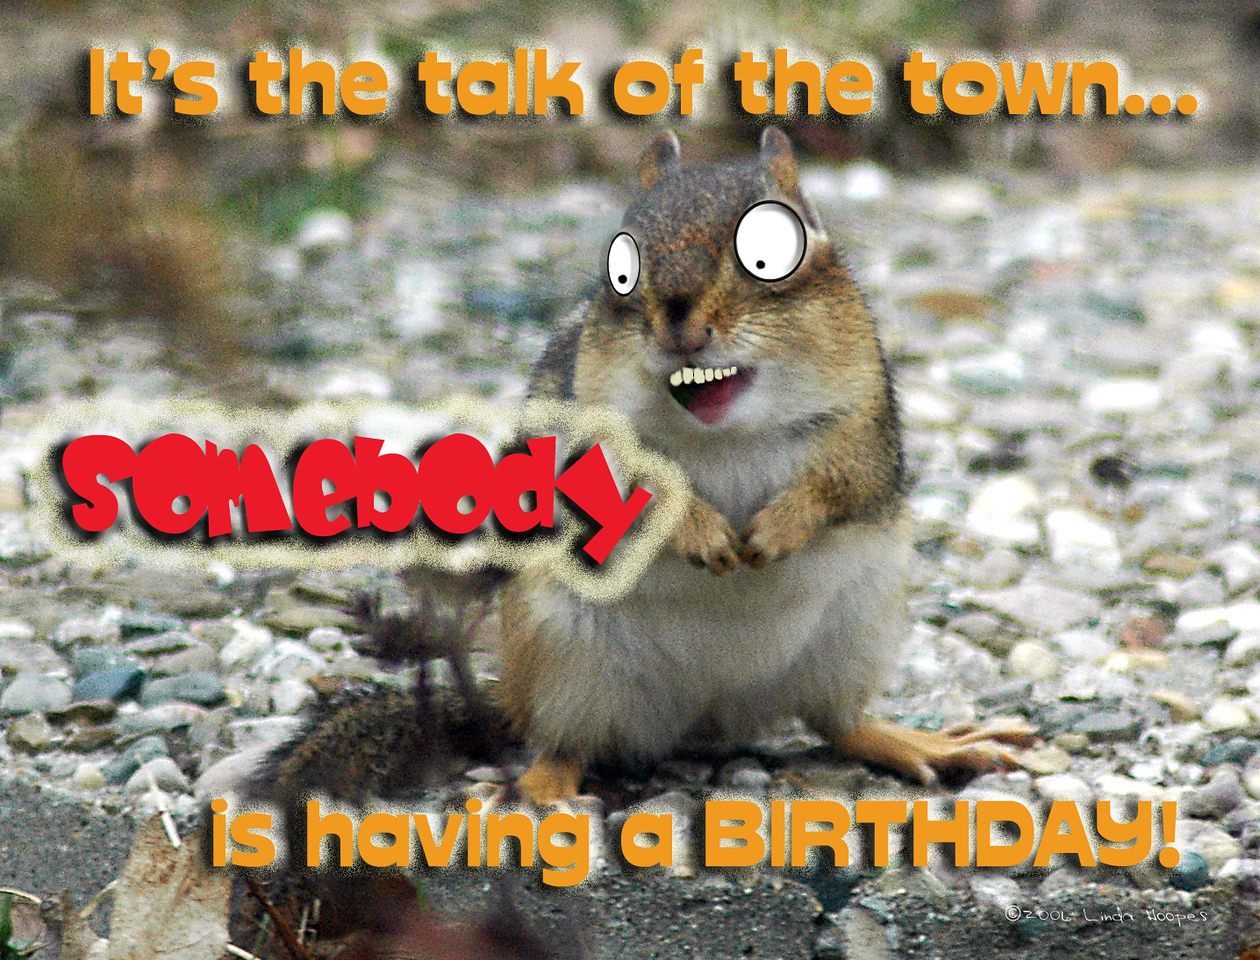 Humorous Birthday card (Blank inside). May also be created as a postcard